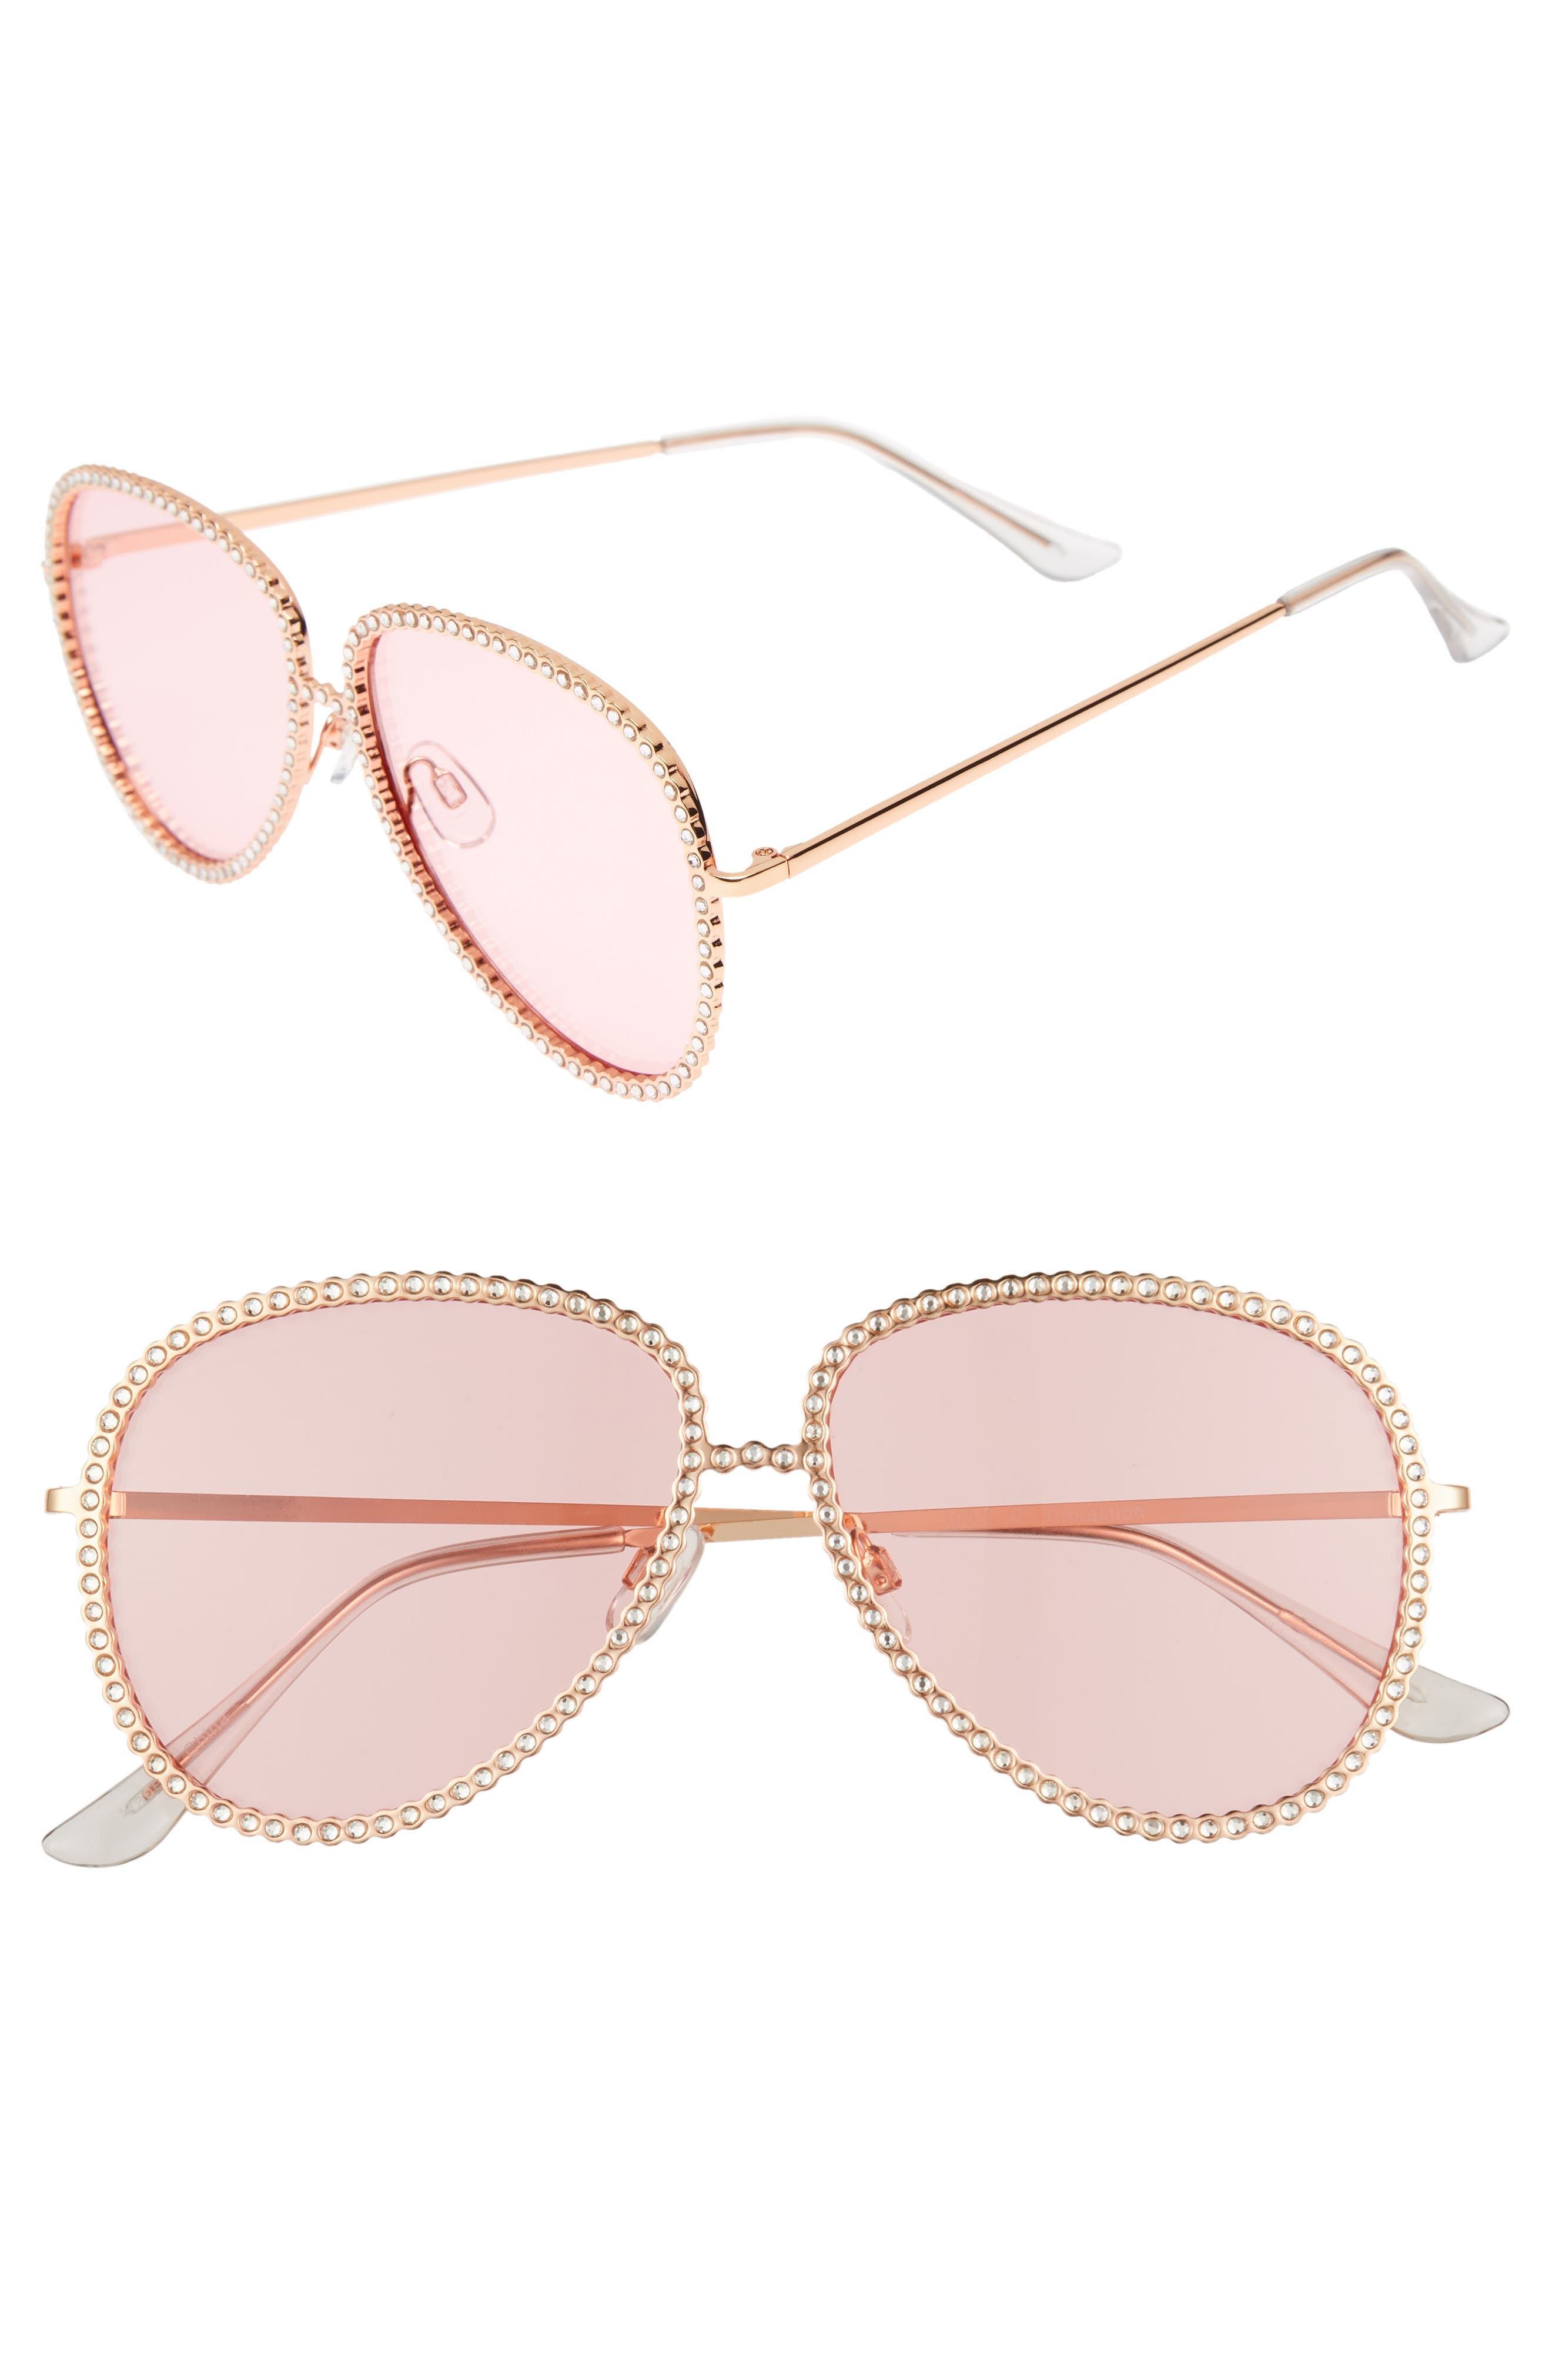 58mm Crystal Aviator Sunglasses,                         Main,                         color,